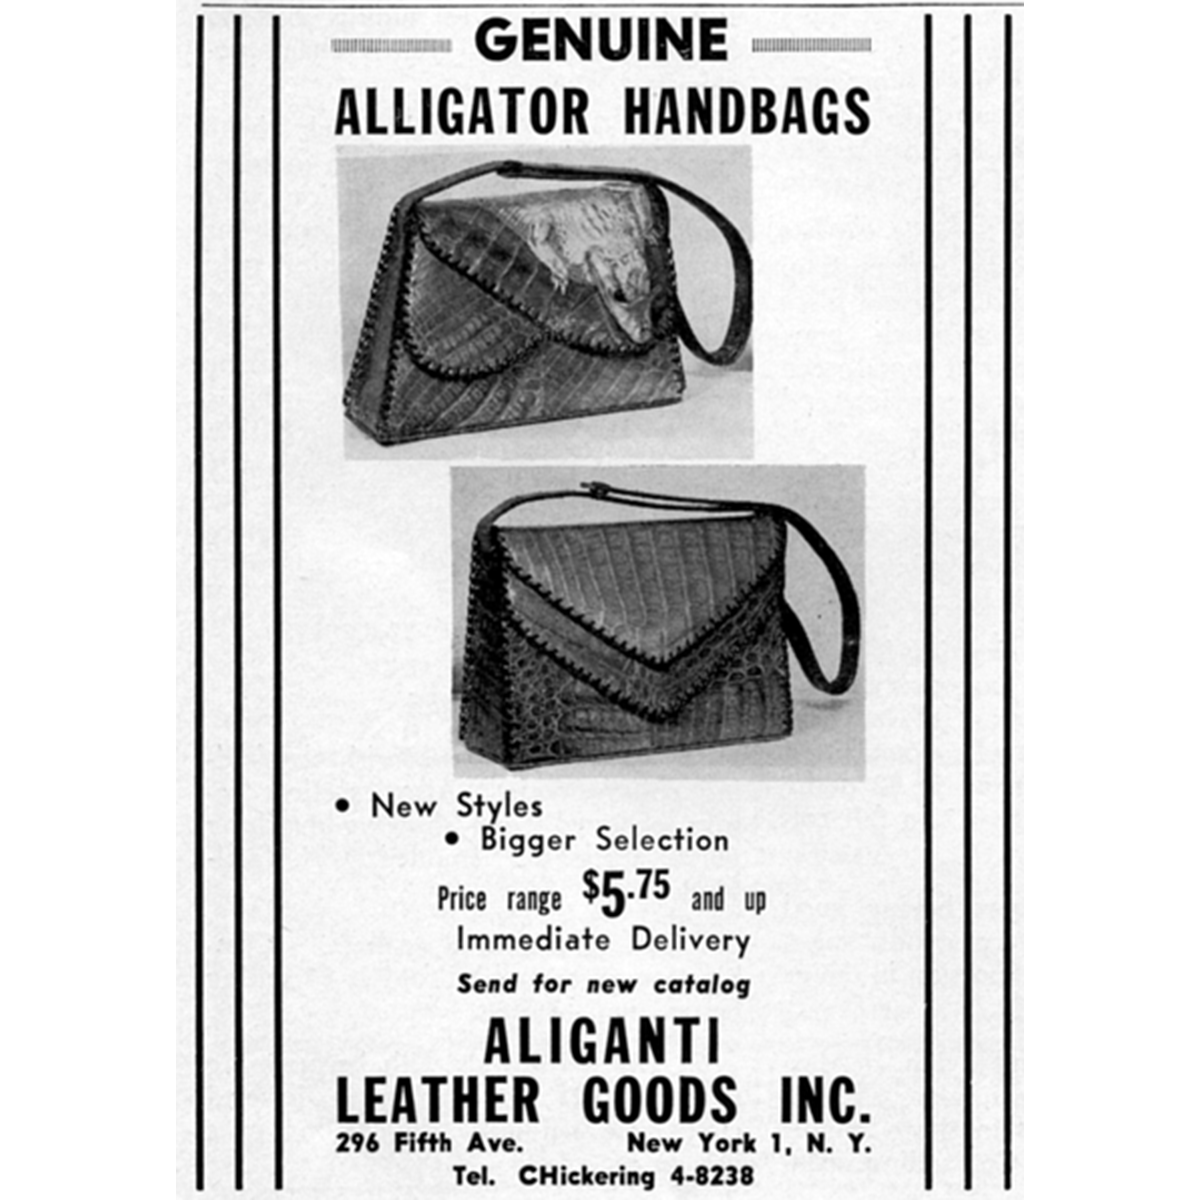 Alligante Alligator Shoulder Bag vintage ad